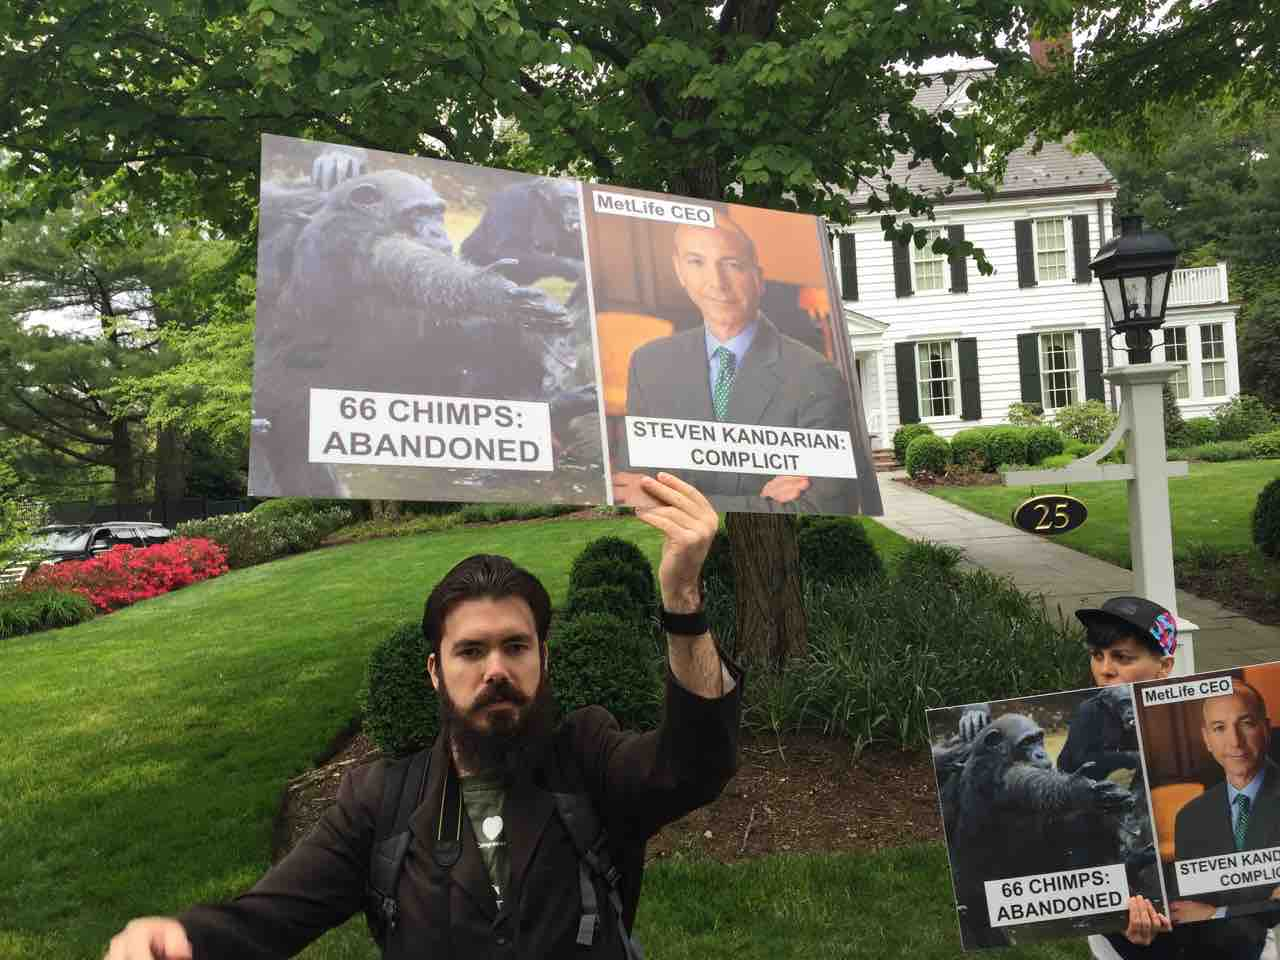 Activists protest at the Summit NJ home of Steven Kandarian.